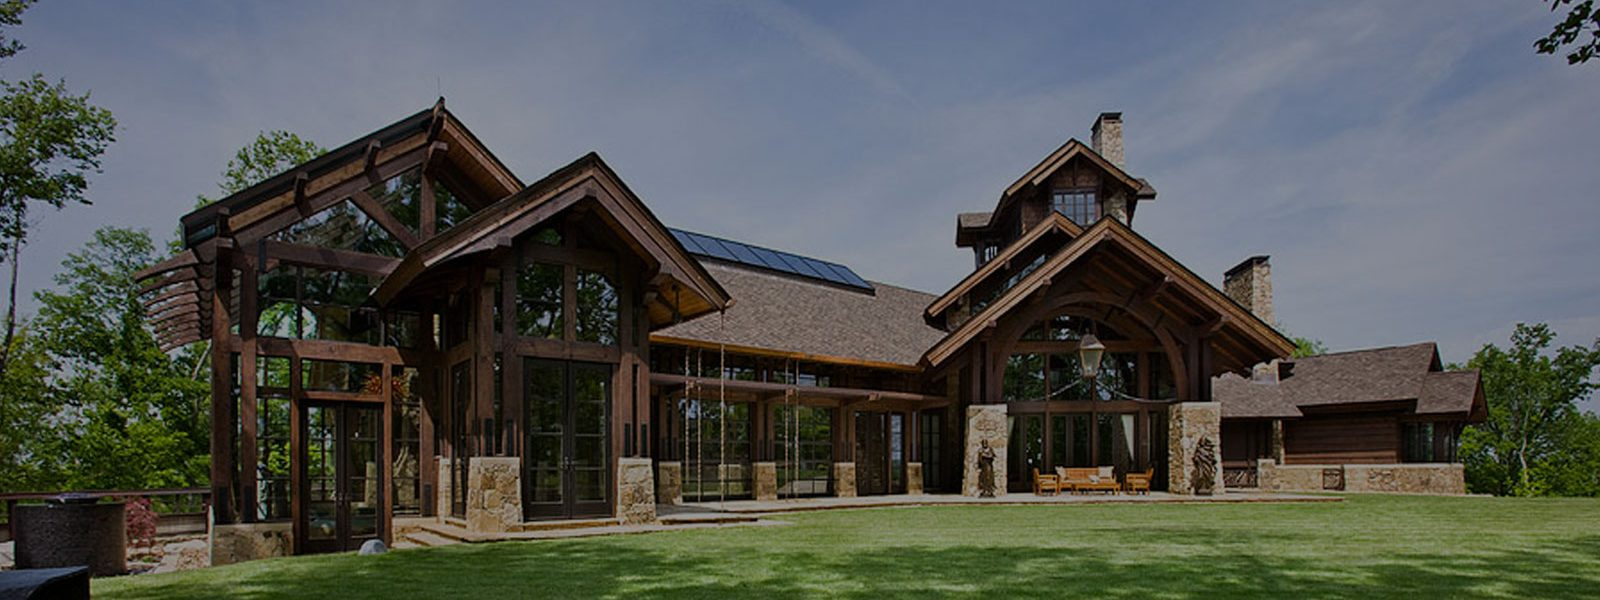 tennessee log homes timber trusses beams pioneer log systems. Black Bedroom Furniture Sets. Home Design Ideas